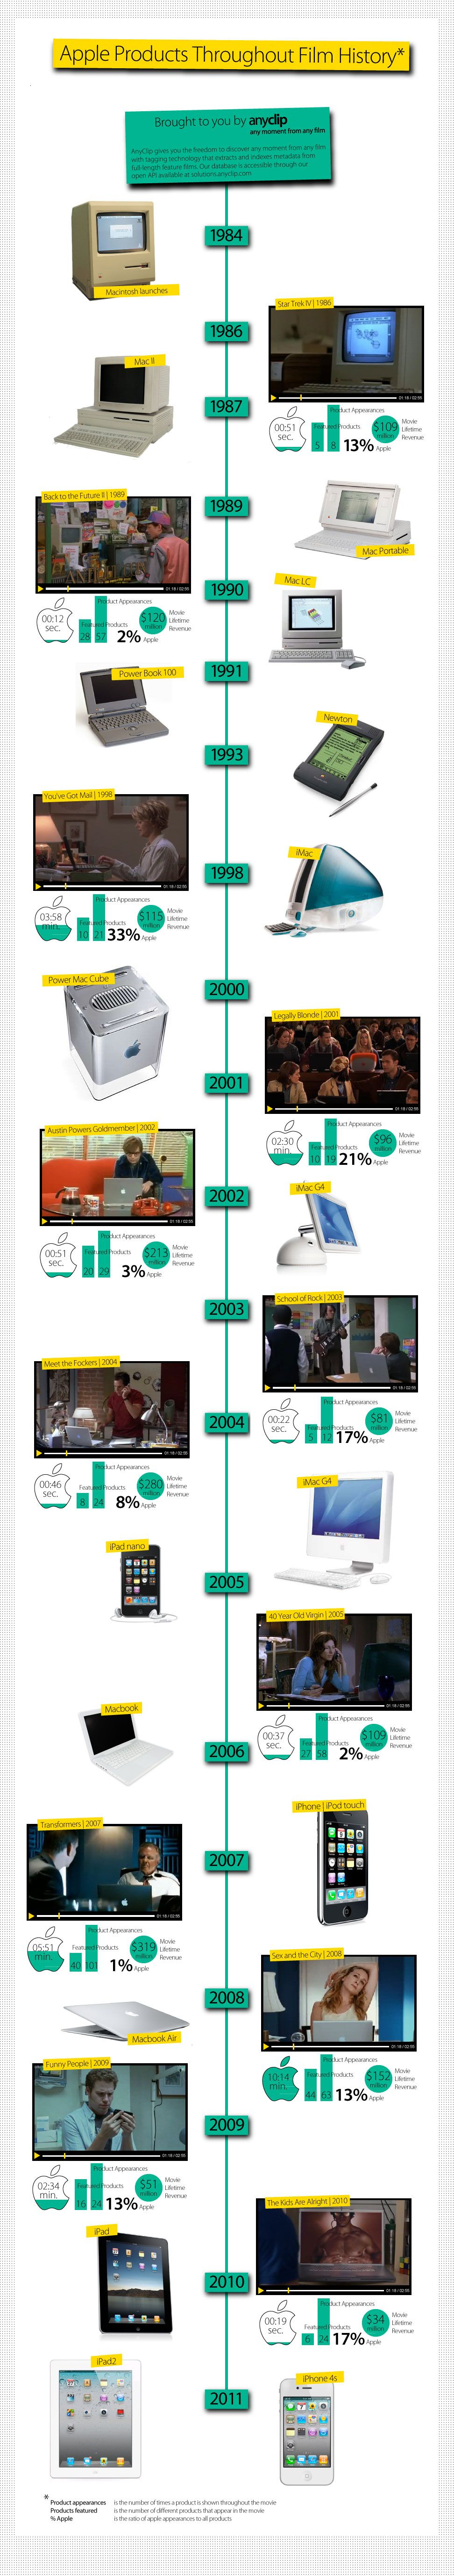 this infographic highlights how and where apple products have appeared in films throughout history